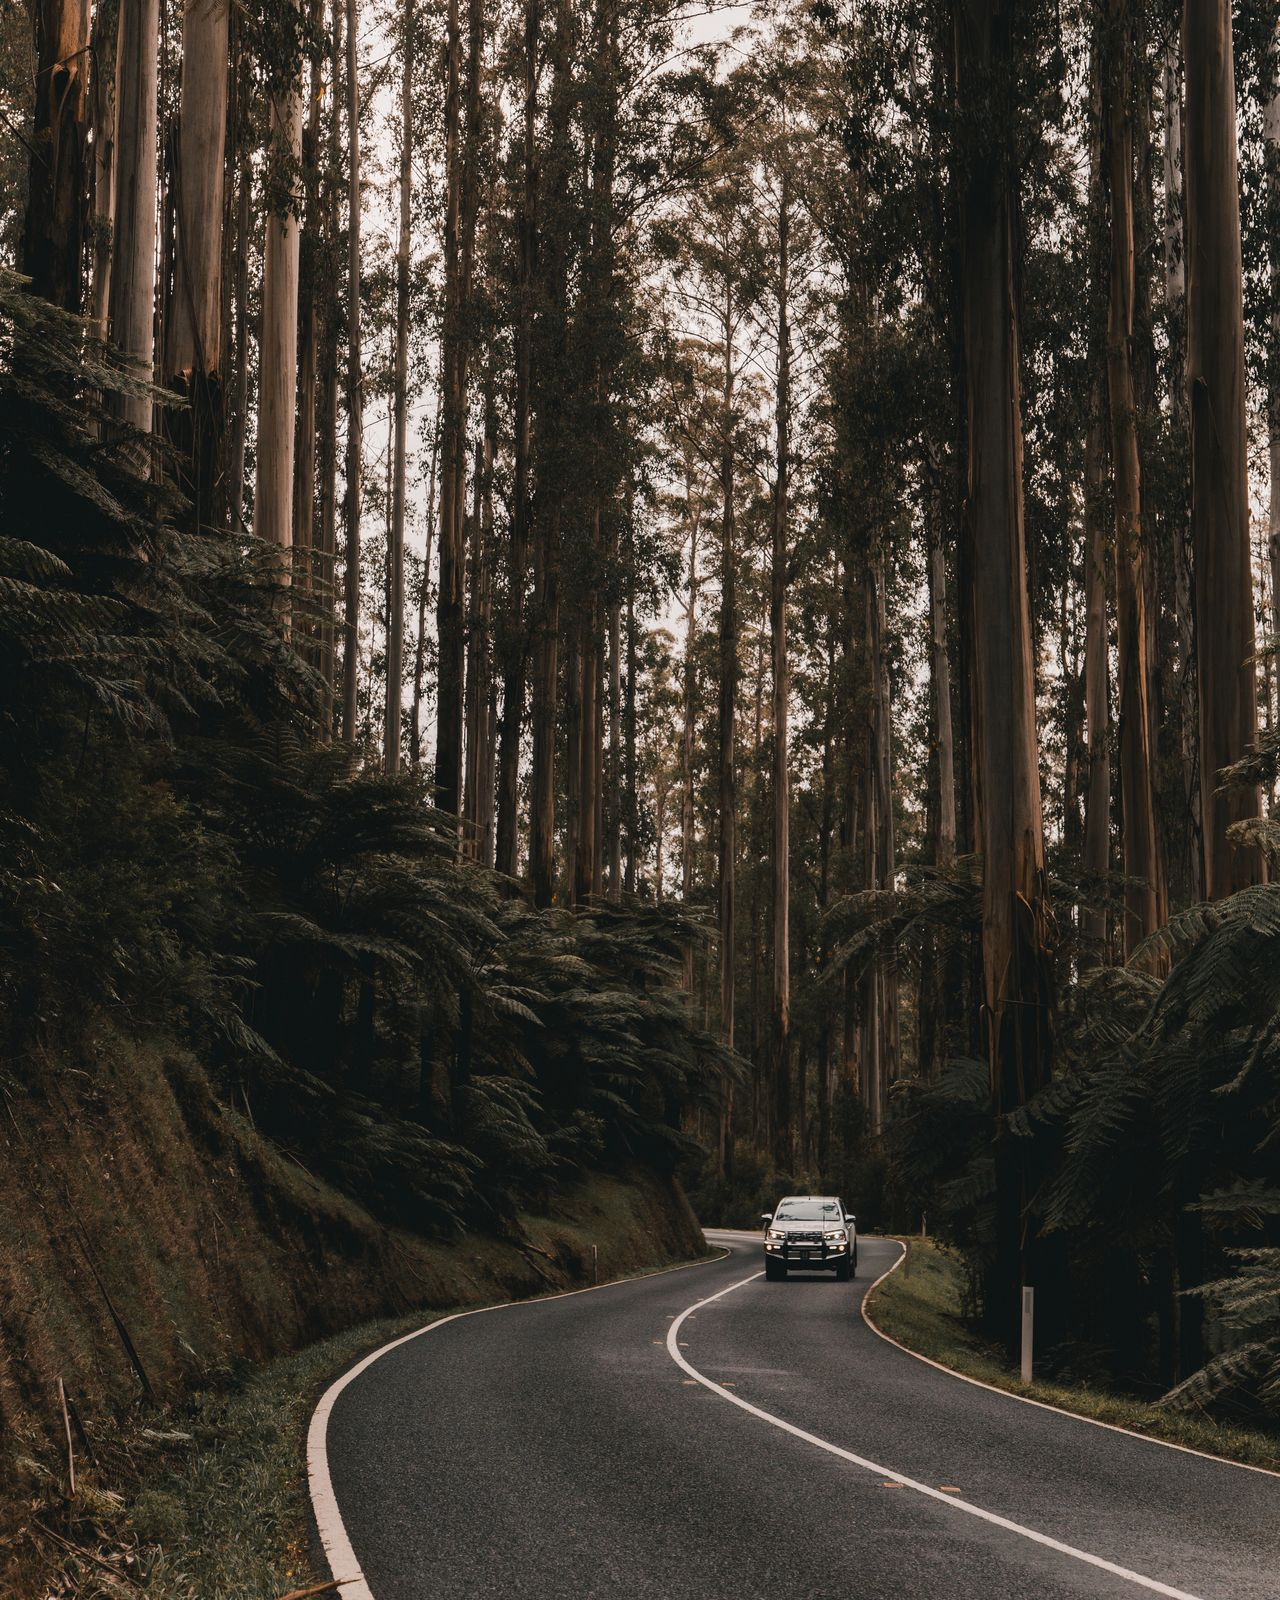 The Black Spur Car Tree Road Transportation No People Outdoors Land Vehicle Nature Beauty In Nature The Great Outdoors - 2017 EyeEm Awards Perspectives Australia Light Light Collection Black Spur The Black Spur Winding Road Forest Woods Golden Hour